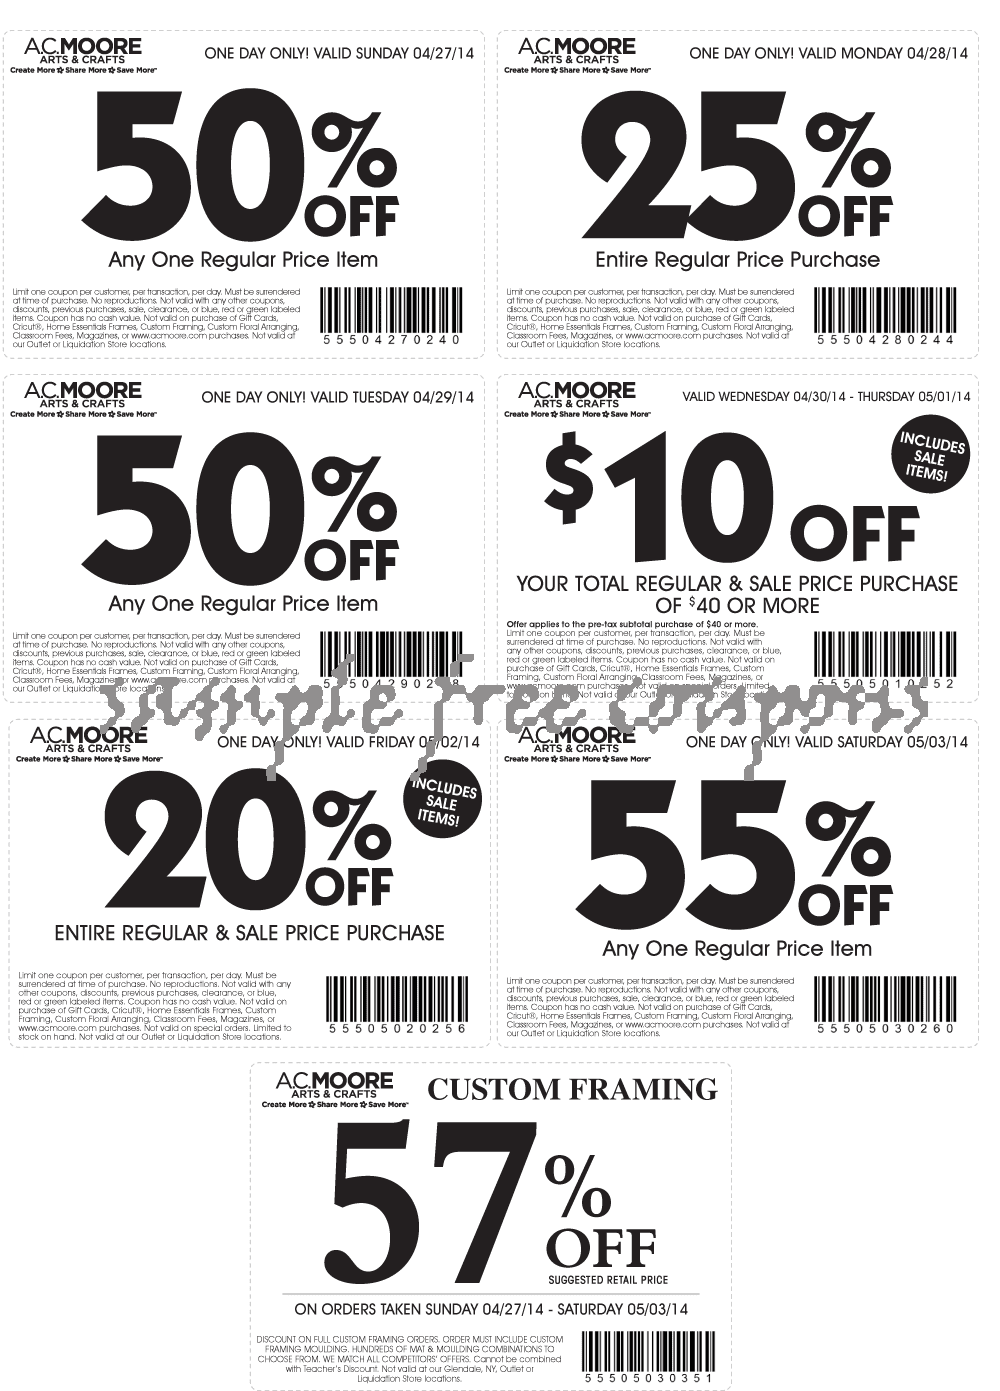 Ac moore printable coupons